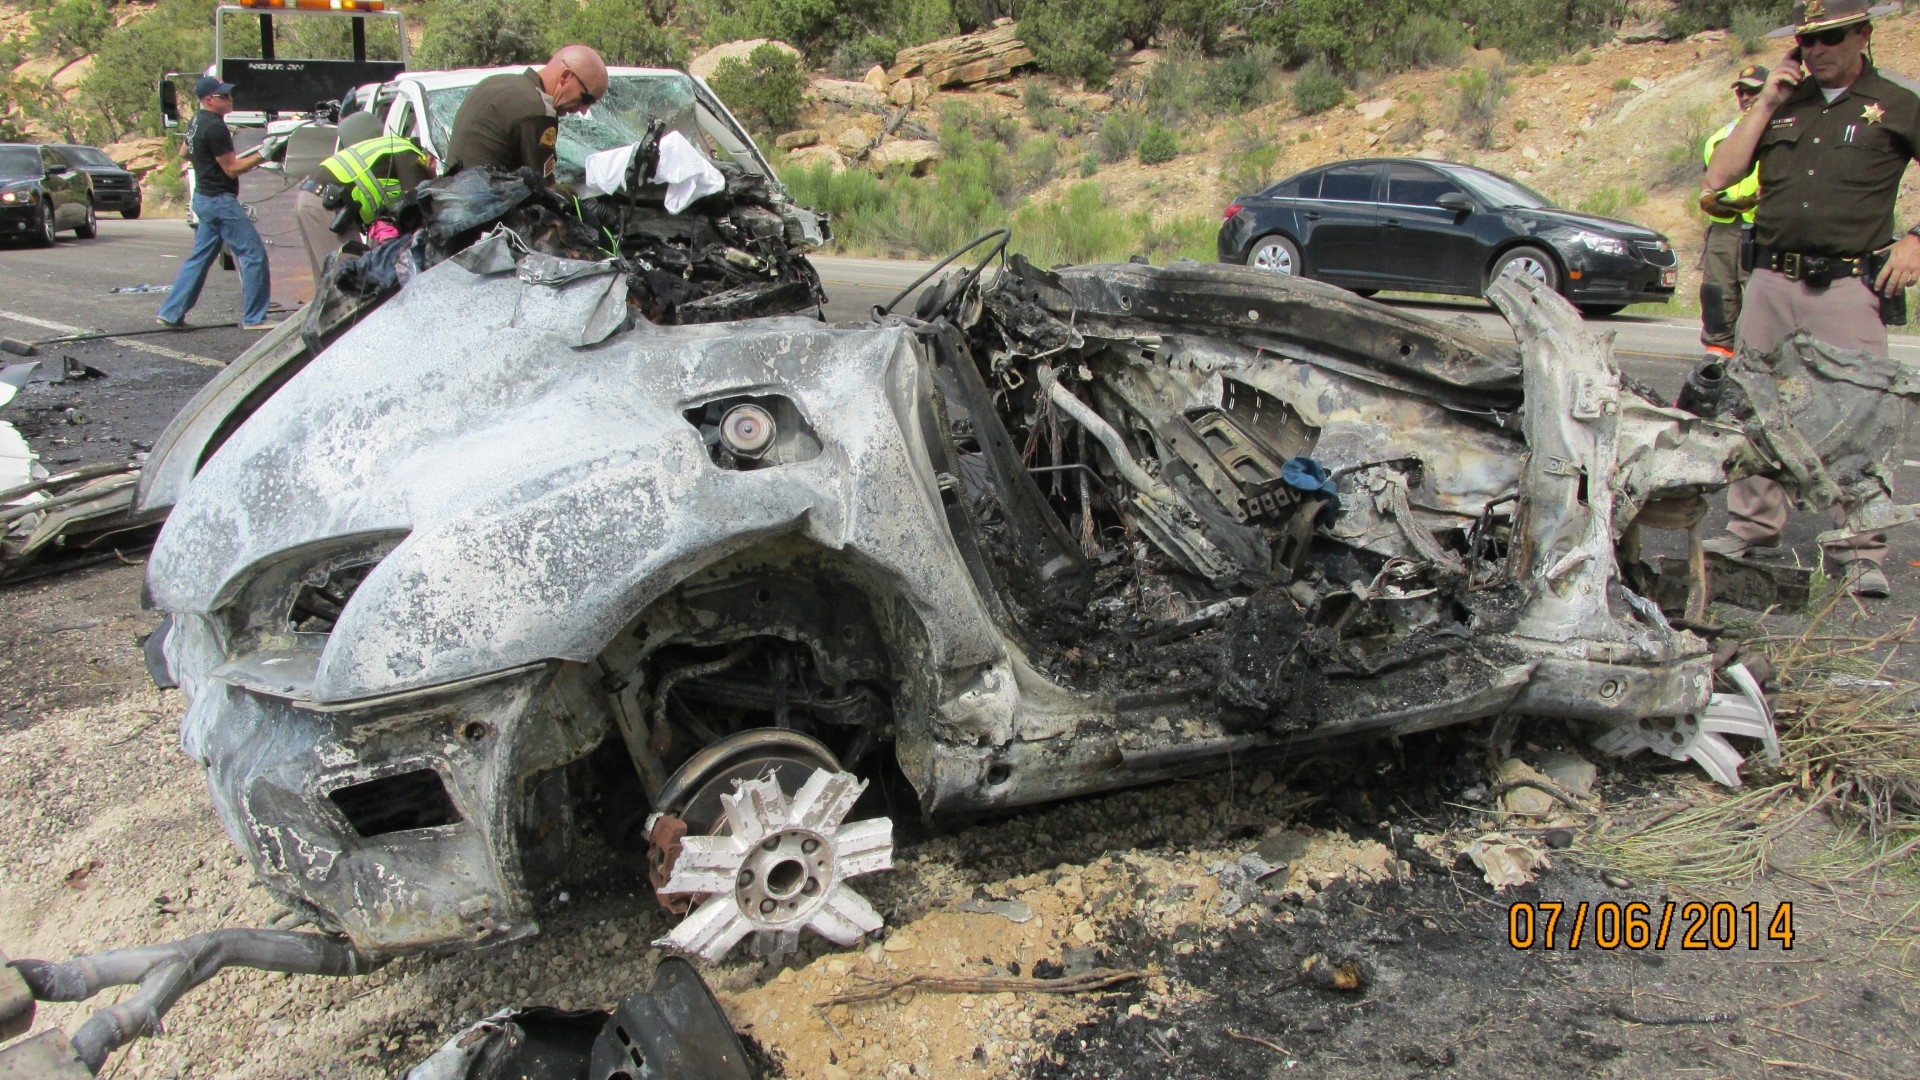 The aftermath of a head-on collision on state Route 191 in San Juan County, Utah, July 6, 2014 | Photo courtesy of Utah Highway Patrol, St. George News